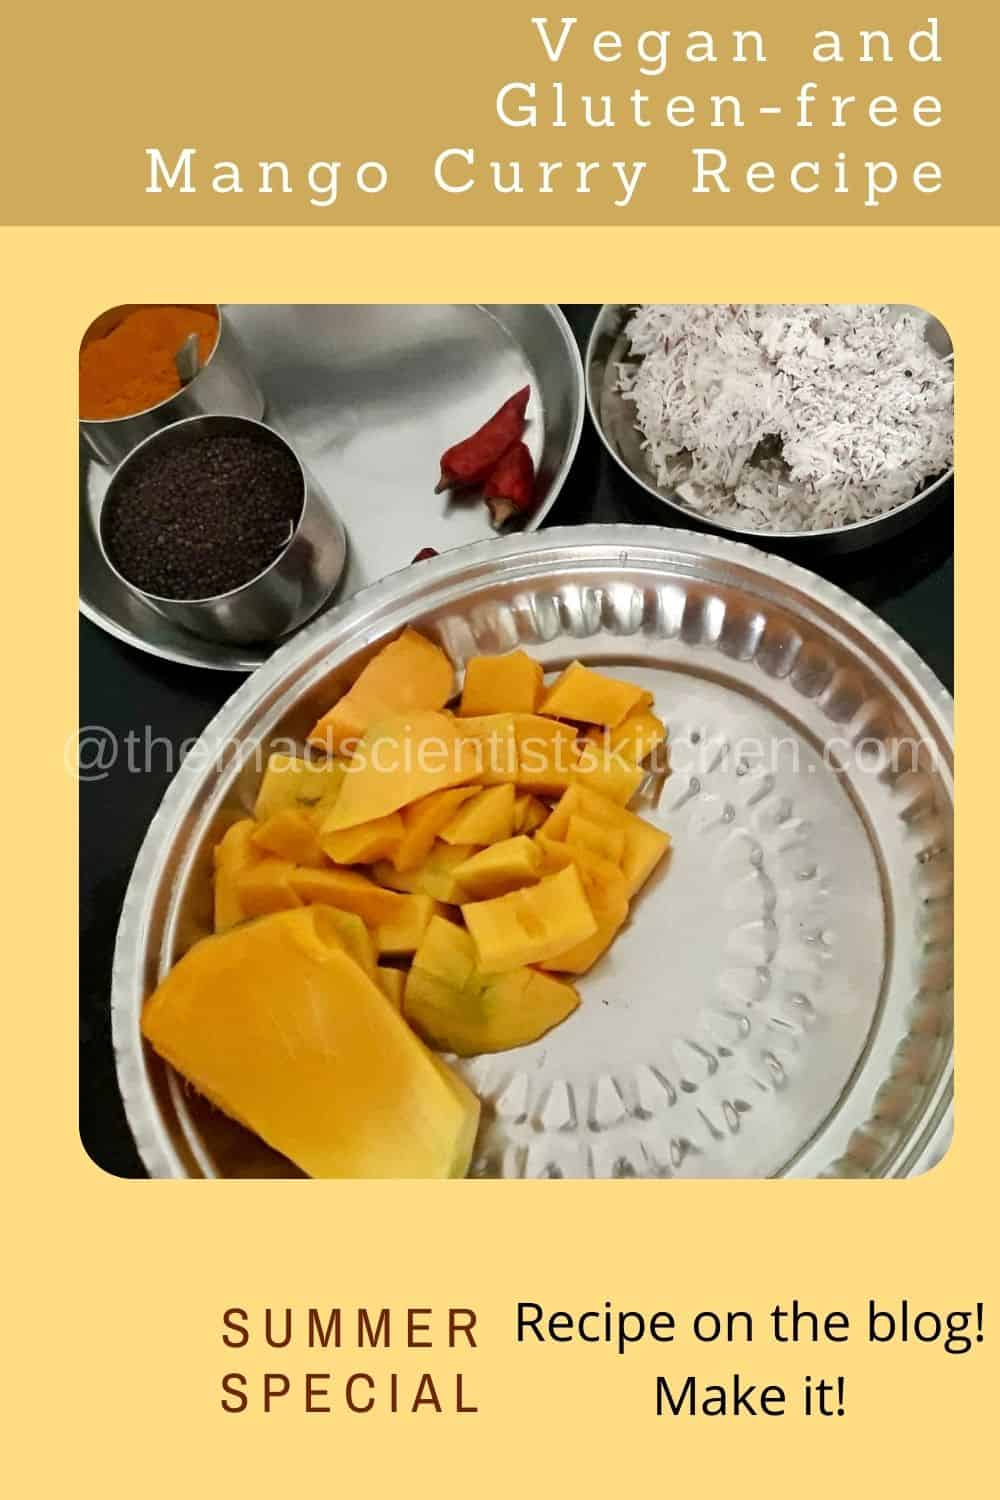 Ingredients for no-onion, no-garlic curry with mangoes.